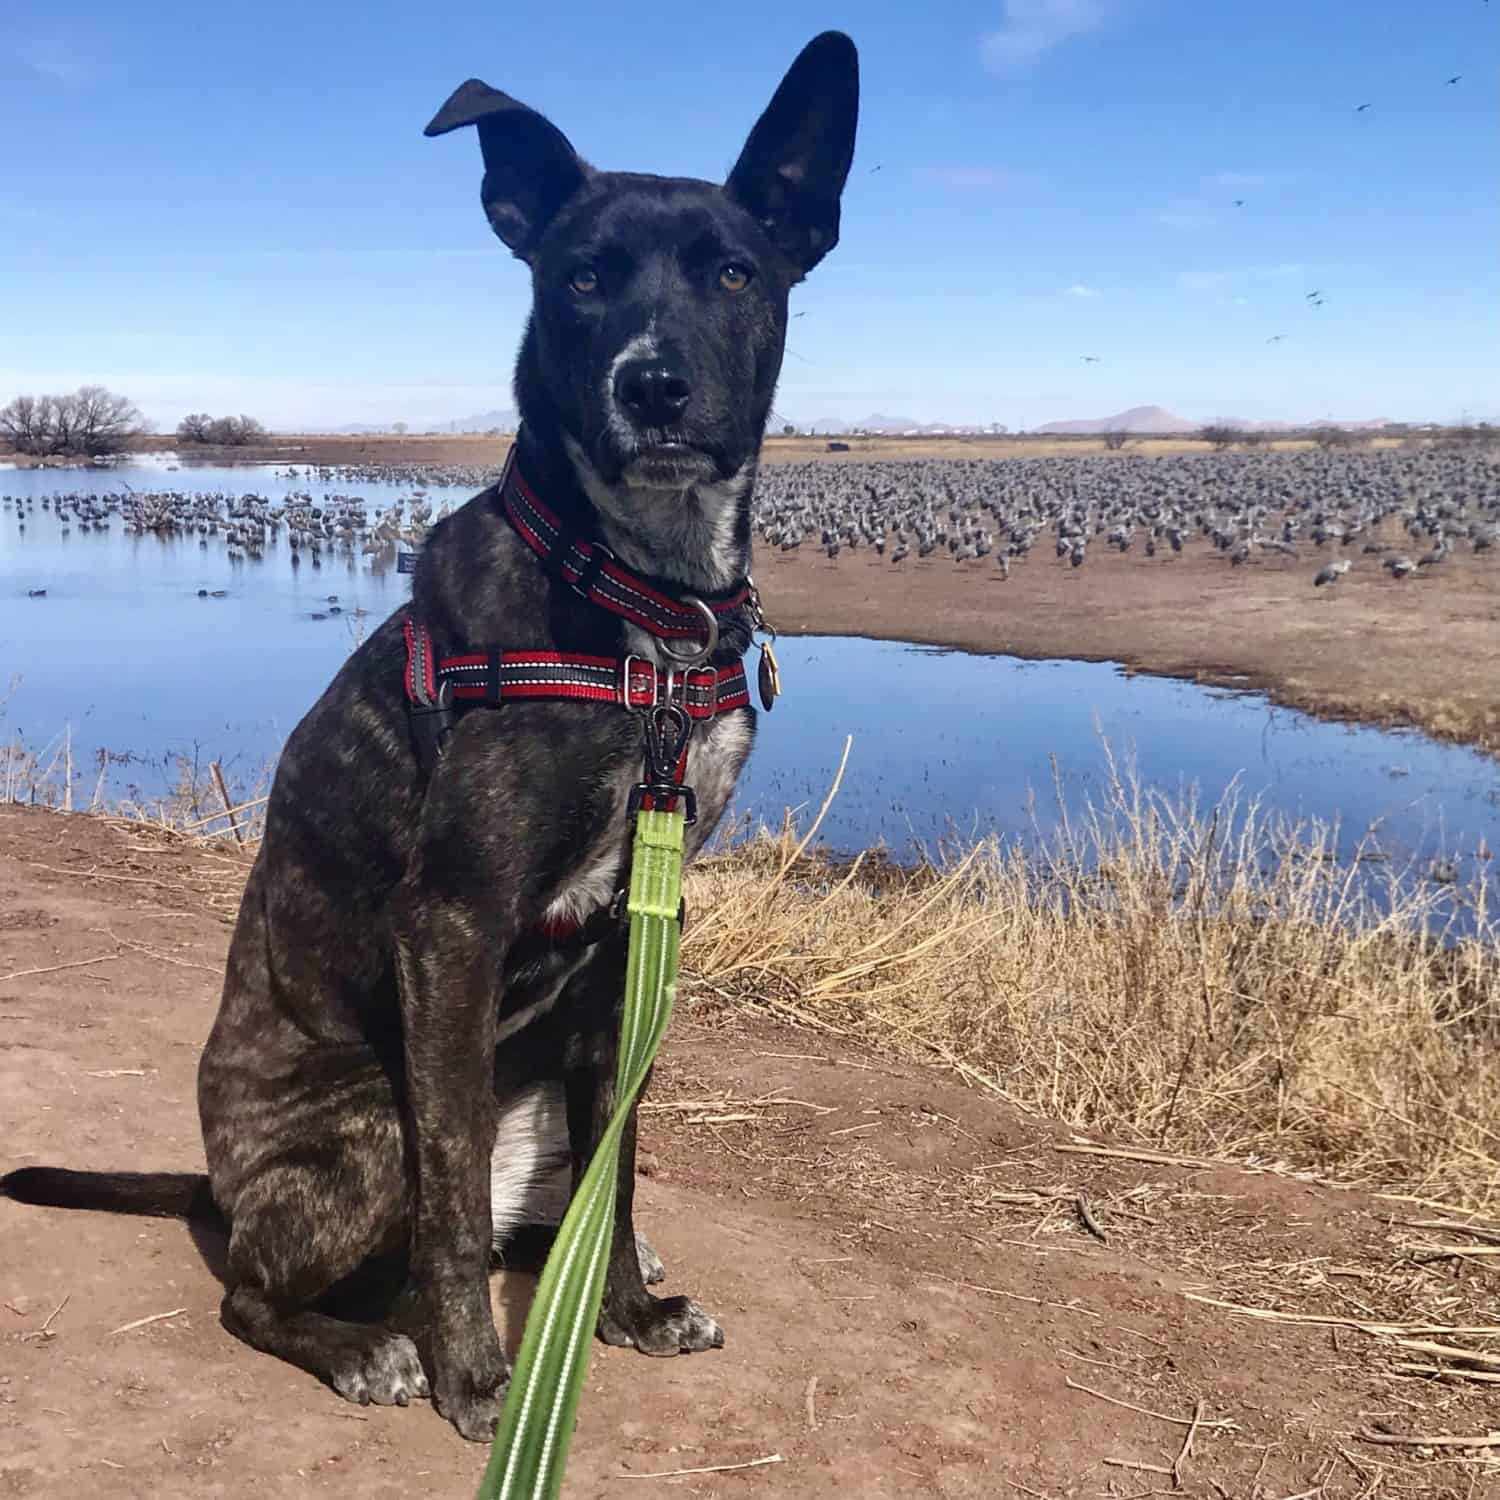 Brindle puppy sitting beside a lake with thousands of Sandhill Cranes